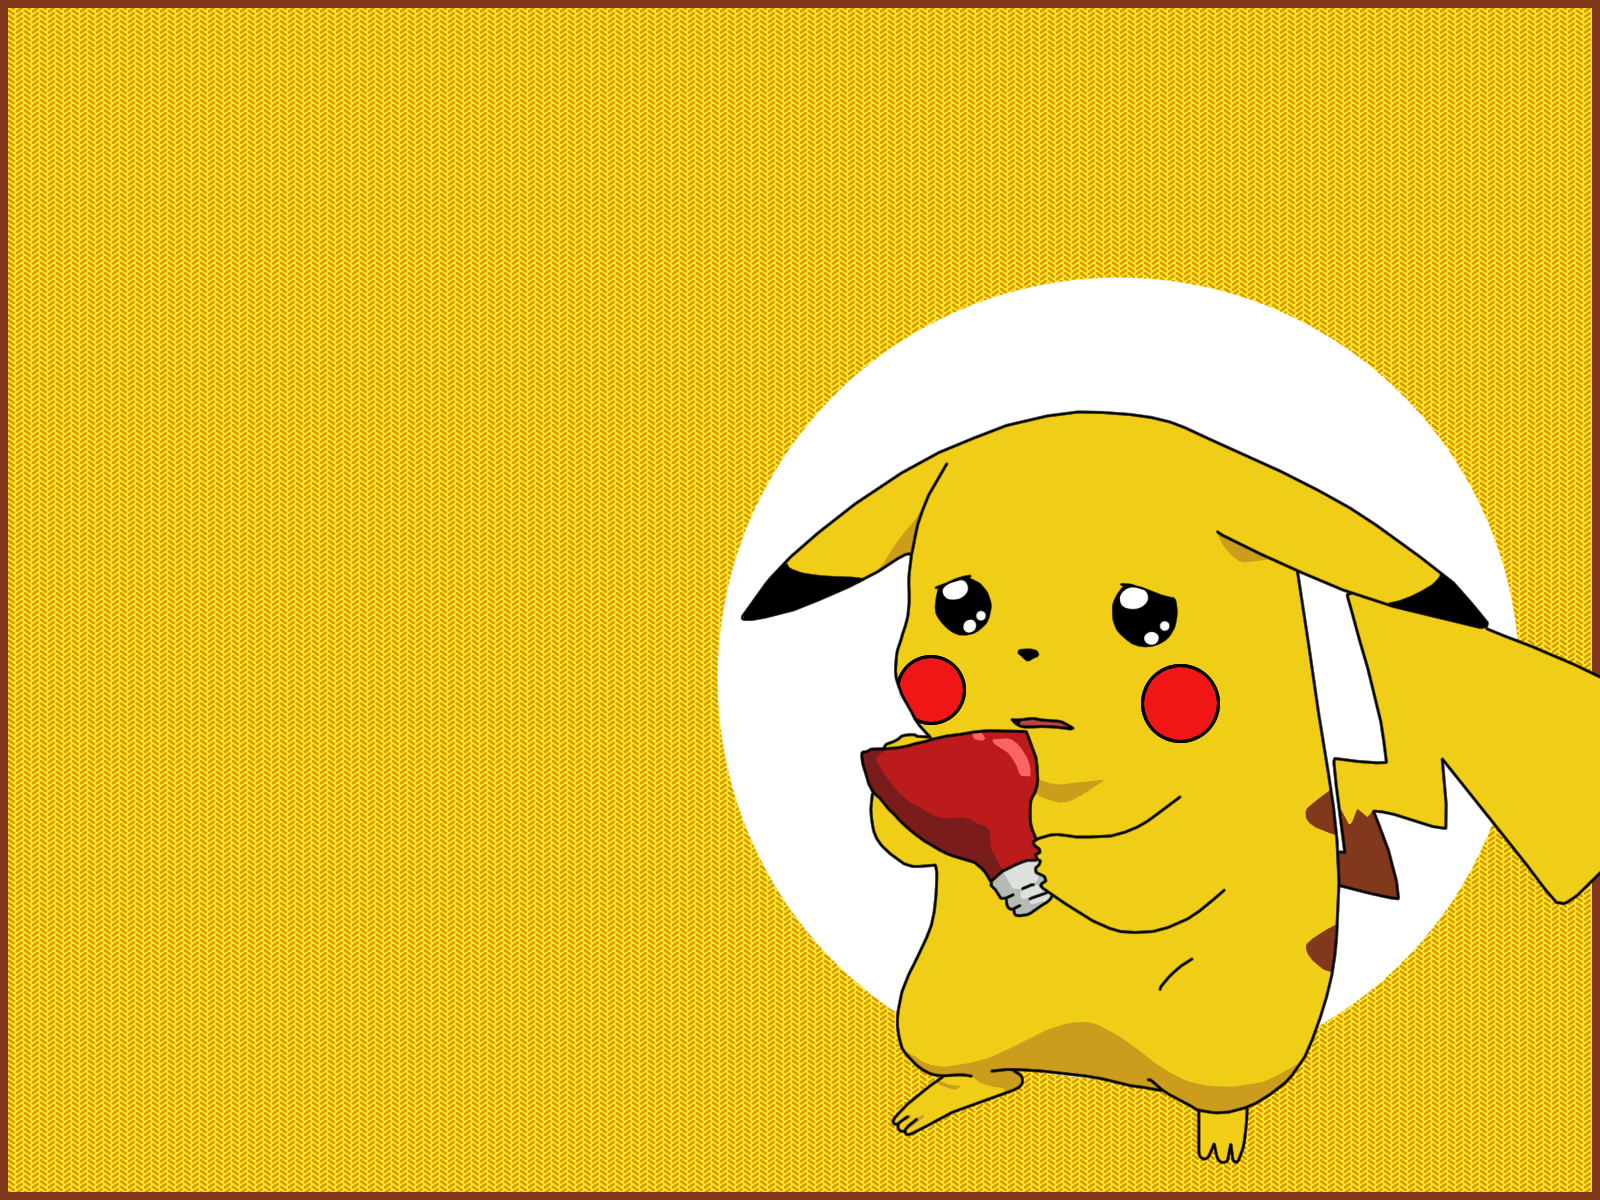 Download Pokemon Pikachu Wallpaper 1600x1200 Wallpoper 1600x1200